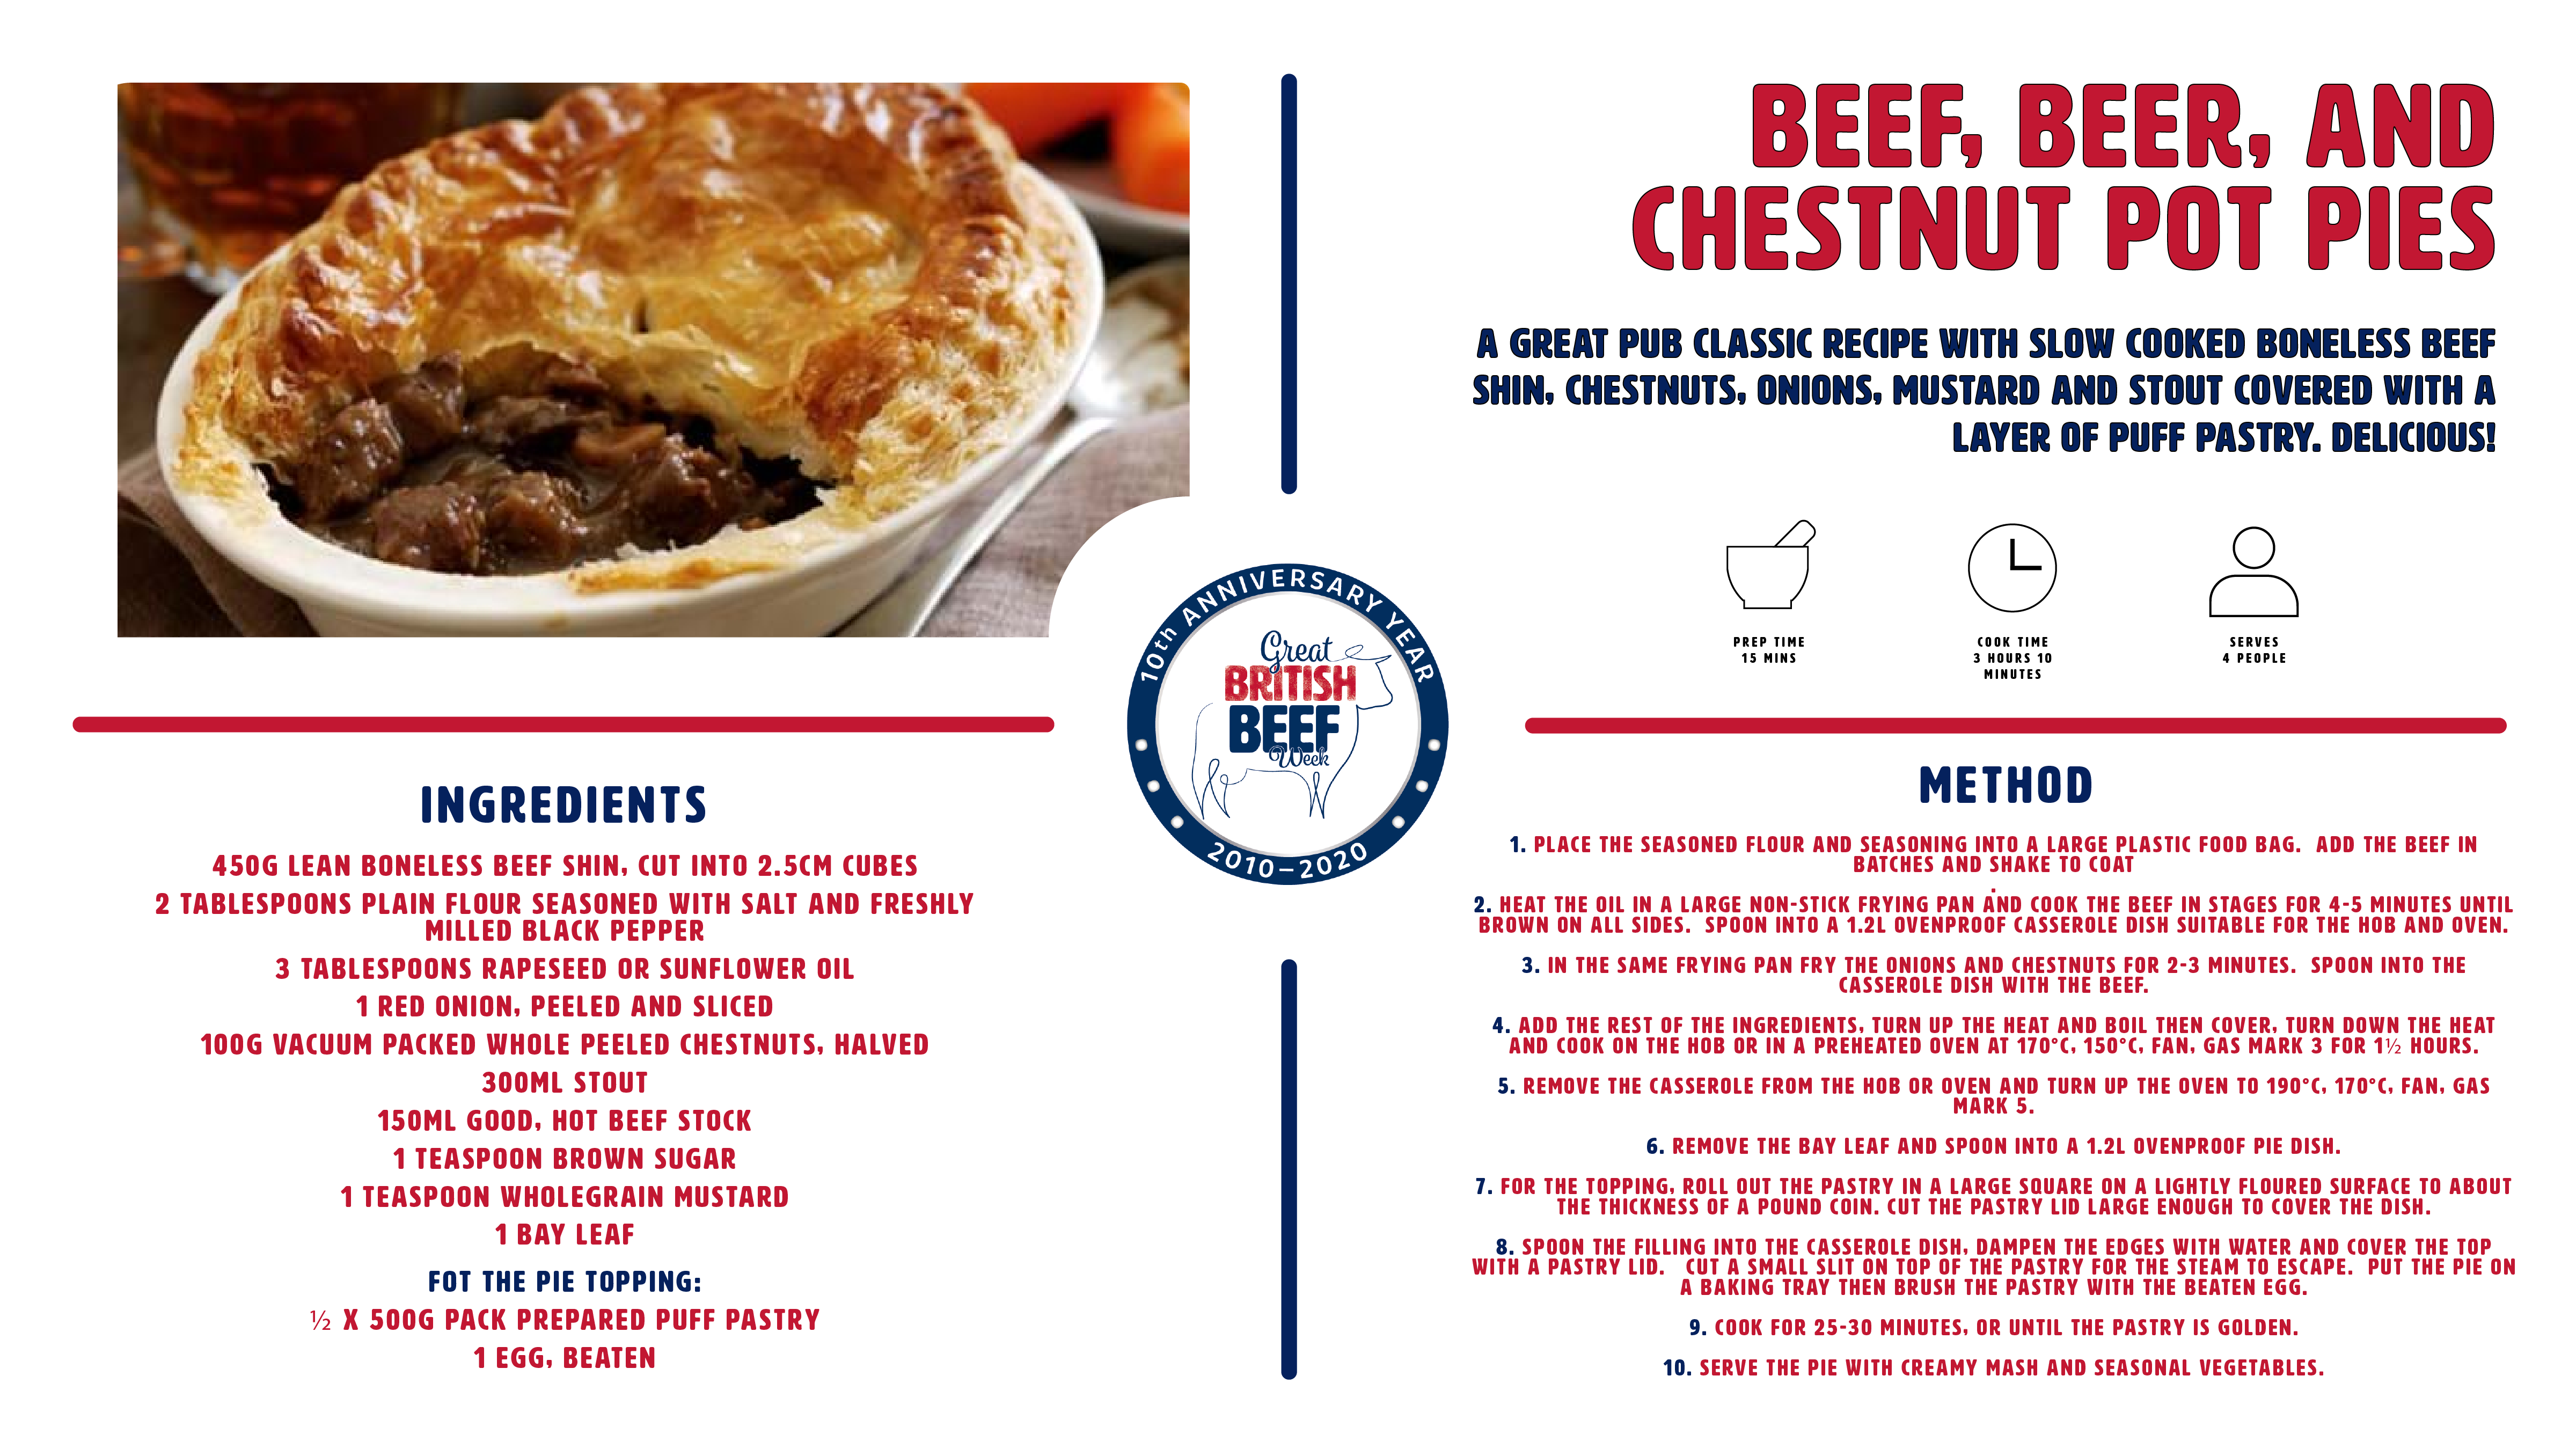 GBBW2020  Beef Beer and Chestnut Pot Pies recipe card